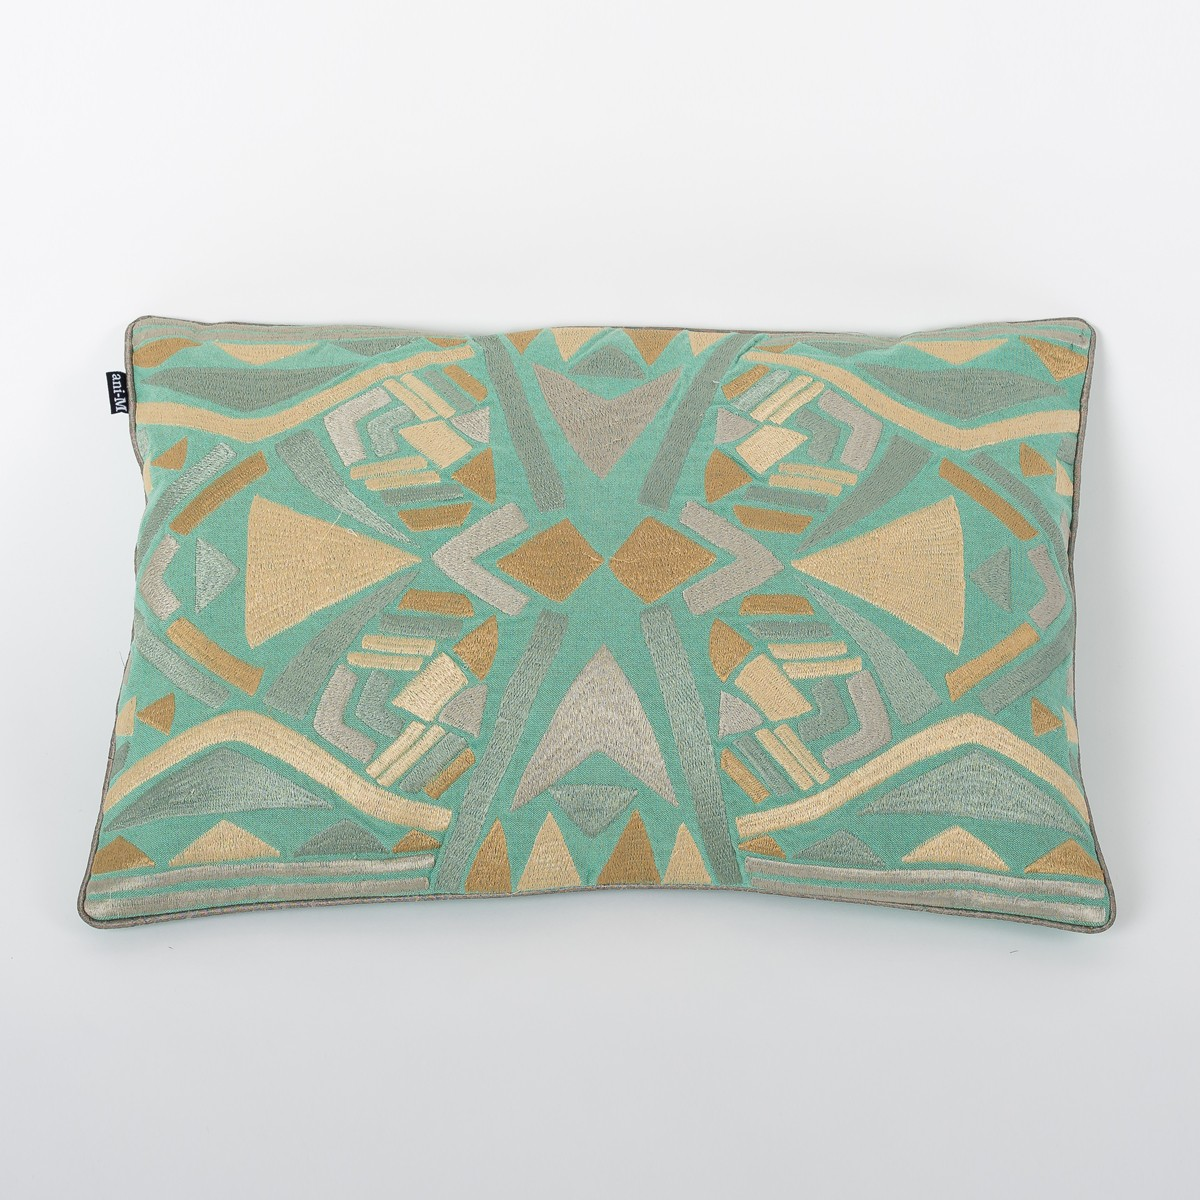 Petti Mint Folk - Teal Cotton Cushion Cover with Thread Embroidery